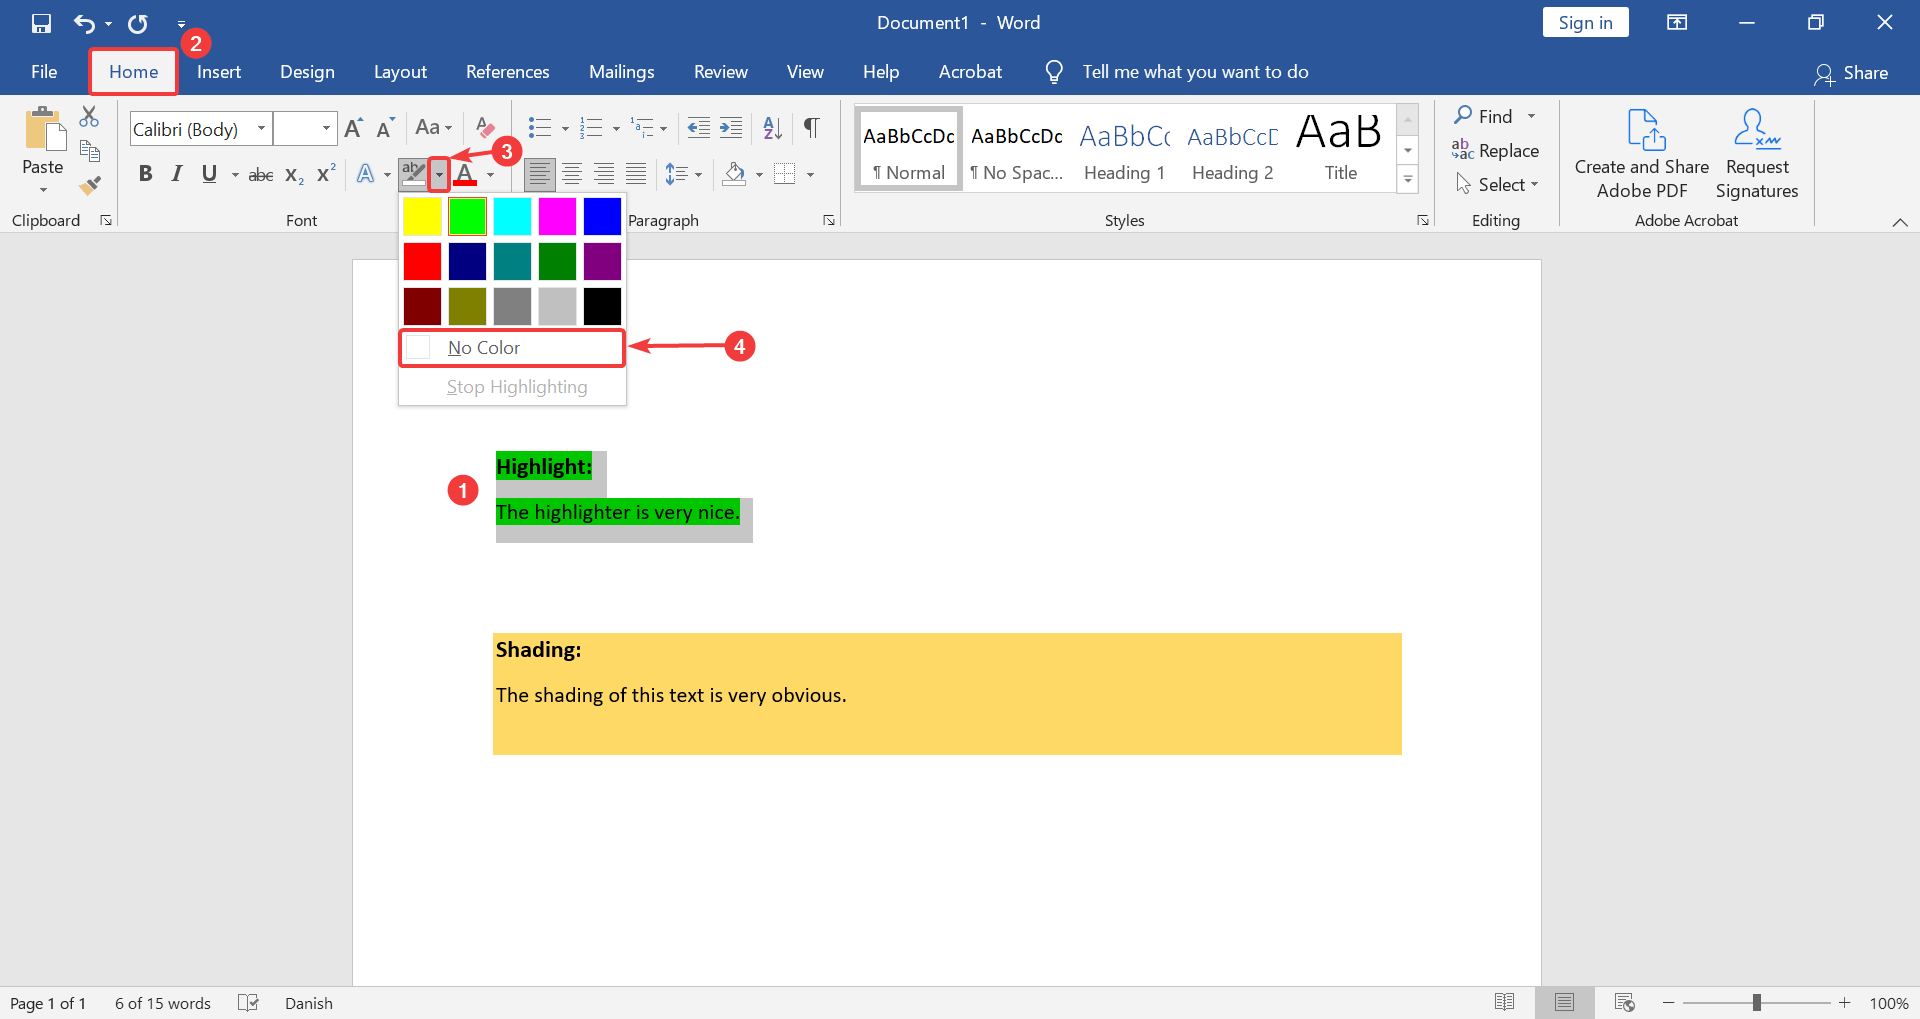 how to remove highlight text in Word